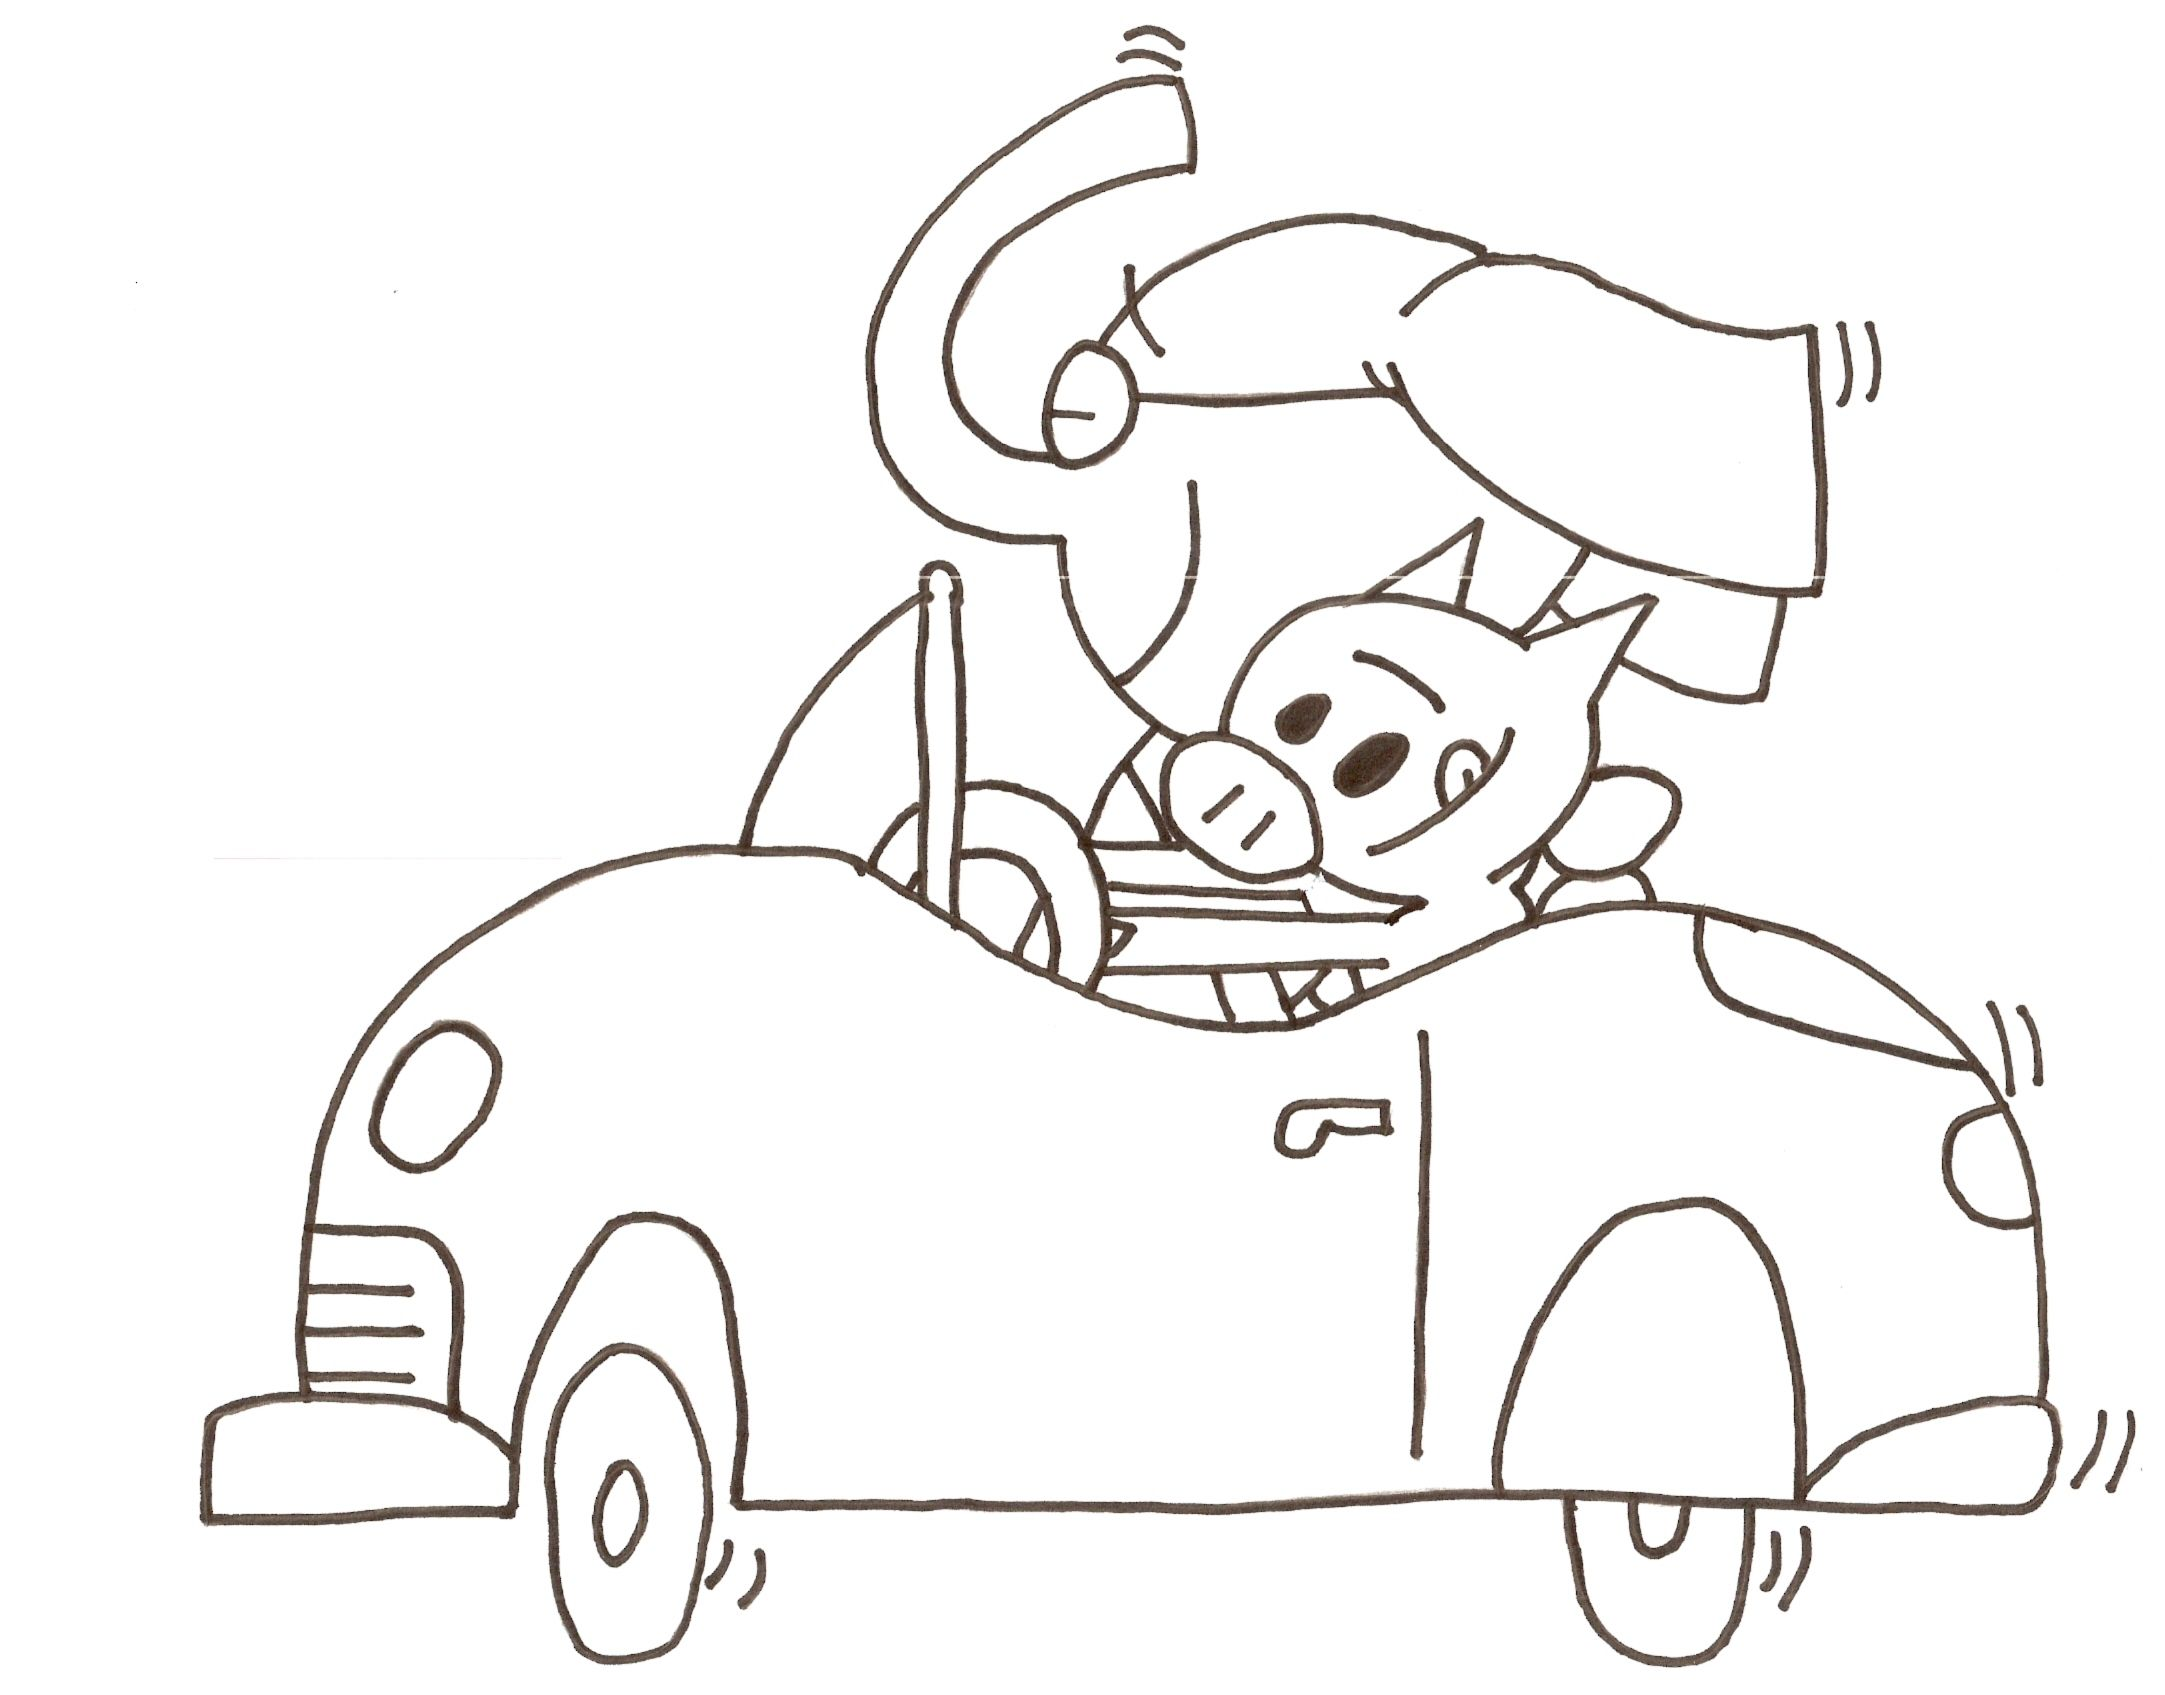 Elephant Piggie Coloring Sheet Quot Let S Go For A Drive Mo Willems Coloring Pages